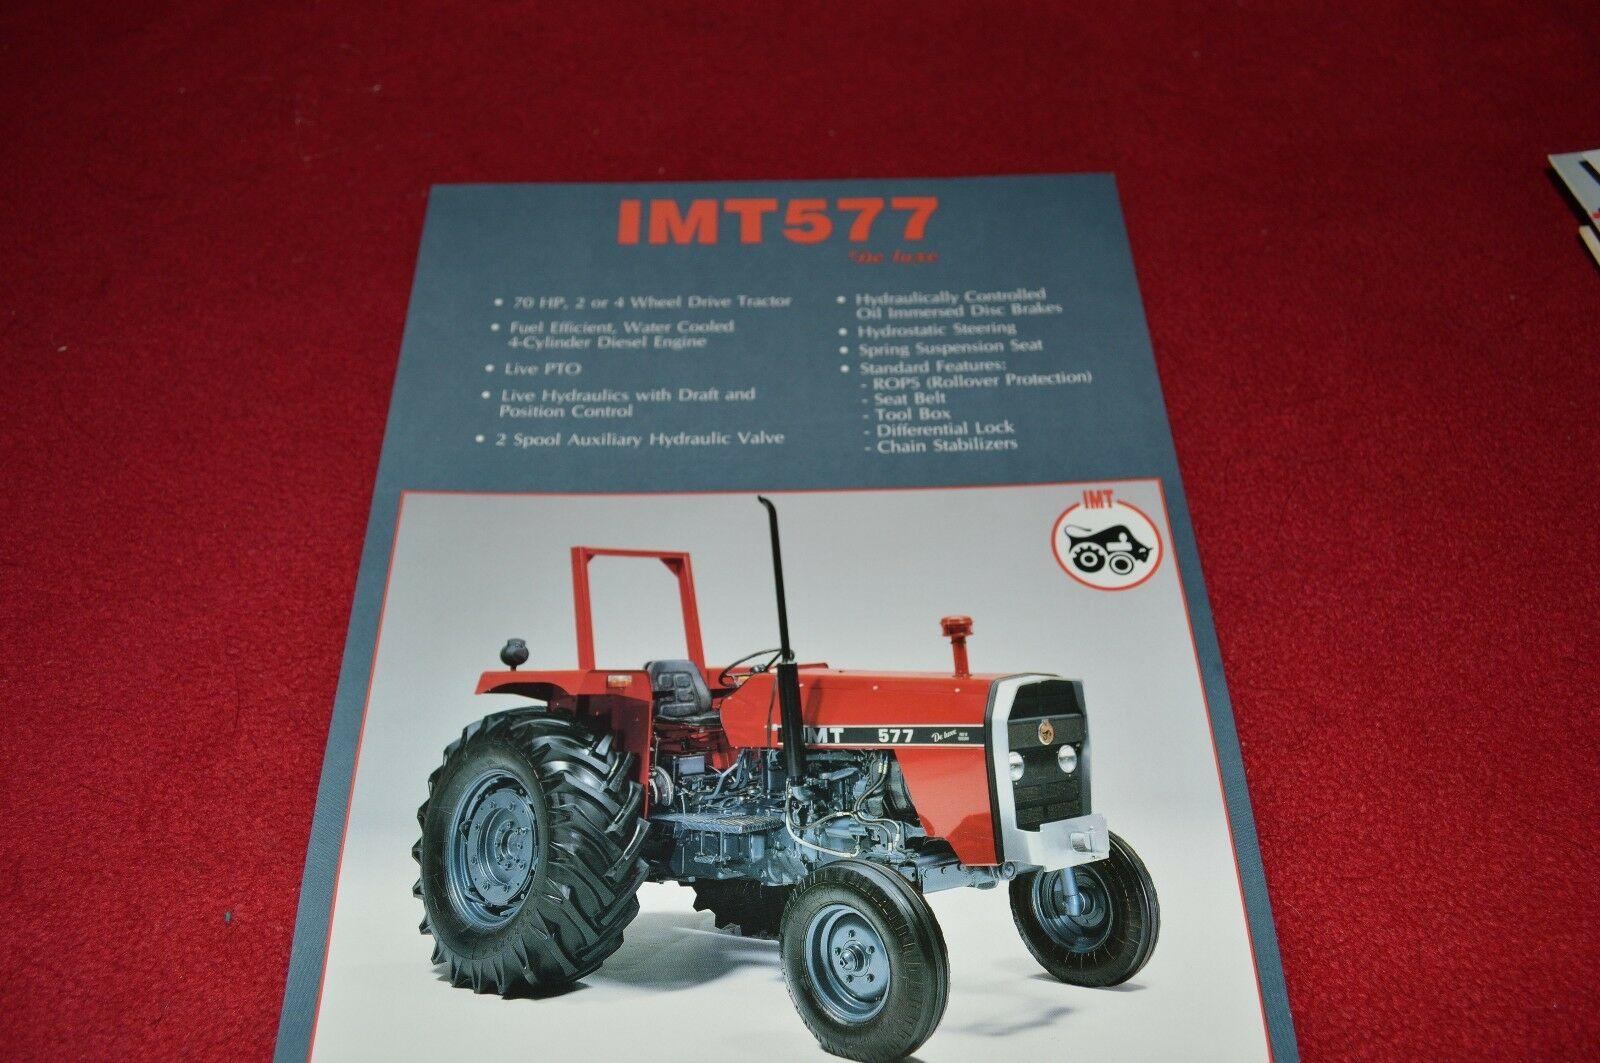 Imt 542 Tractor Manual Panel Fuse Box And Wiring Harness Motor Grader Caterpillar 12f Array 577 De Luxe Dealers Brochure Lcoh 14 99 Picclick Rh Com